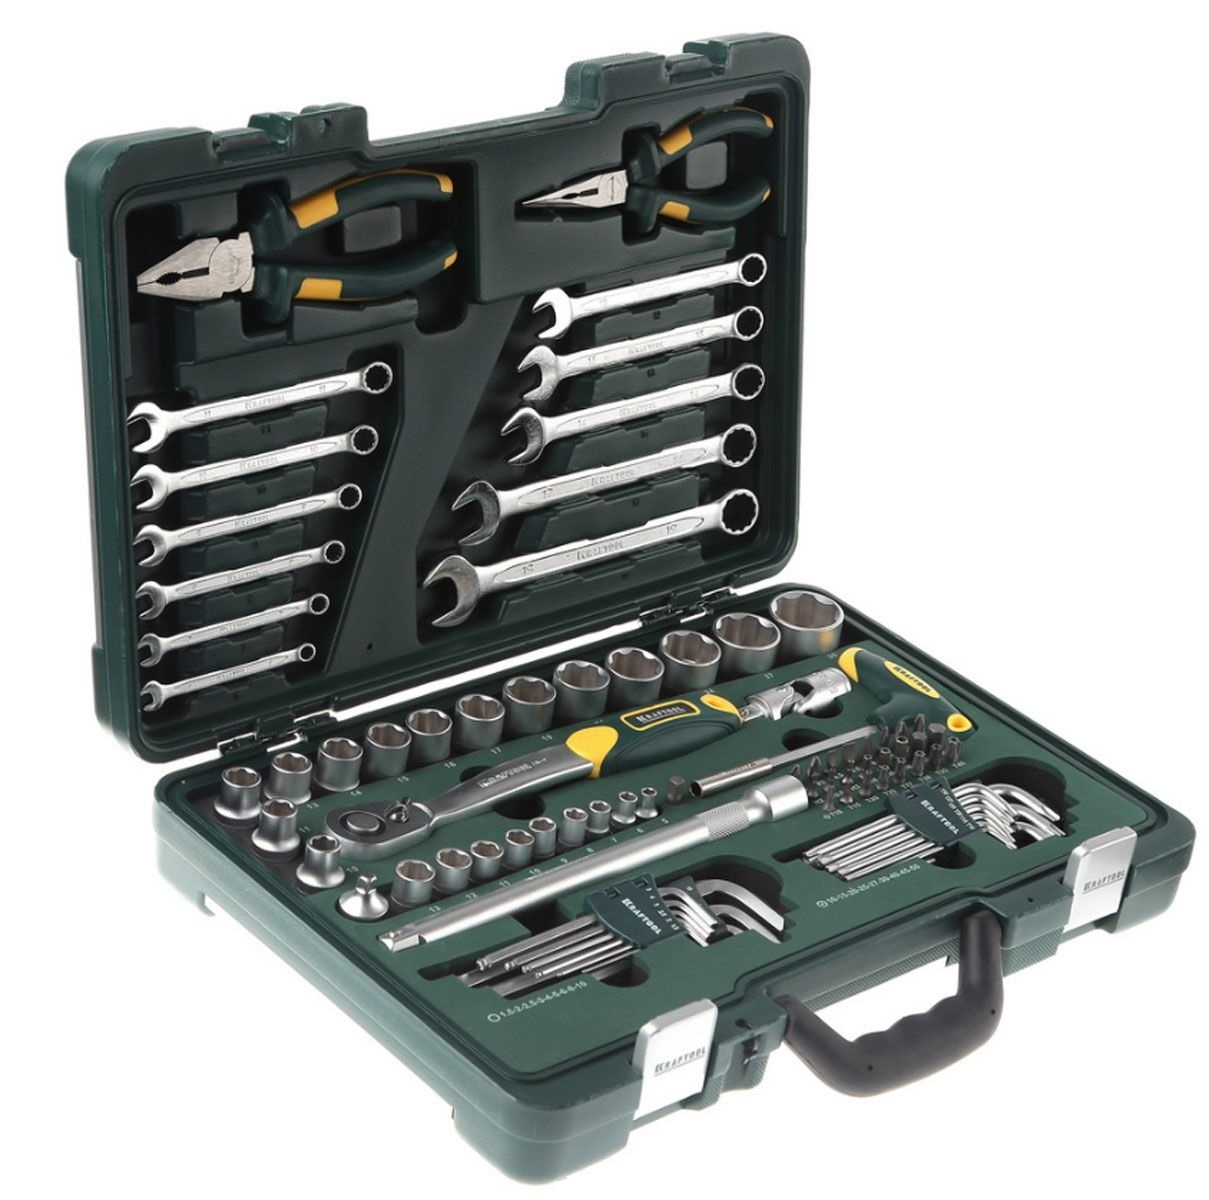 Набор инструментов Kraftool 27977-h84 set of hand tools kraftool 27977 h84